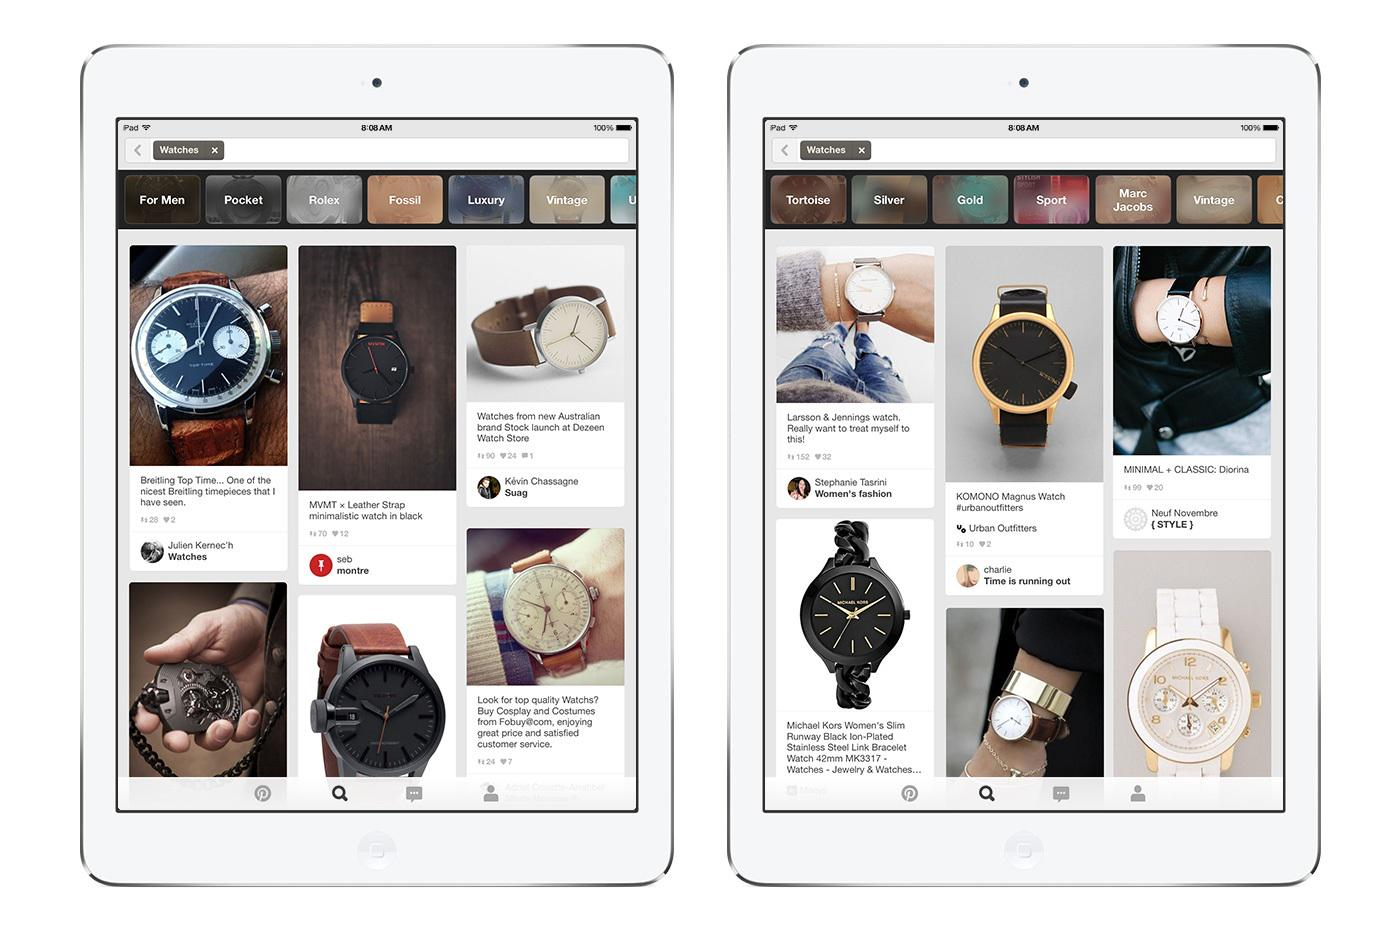 Pinterest woos men with more personalised search topics- http://t.co/Vl8VoNei1G http://t.co/1YUJfTiNDi